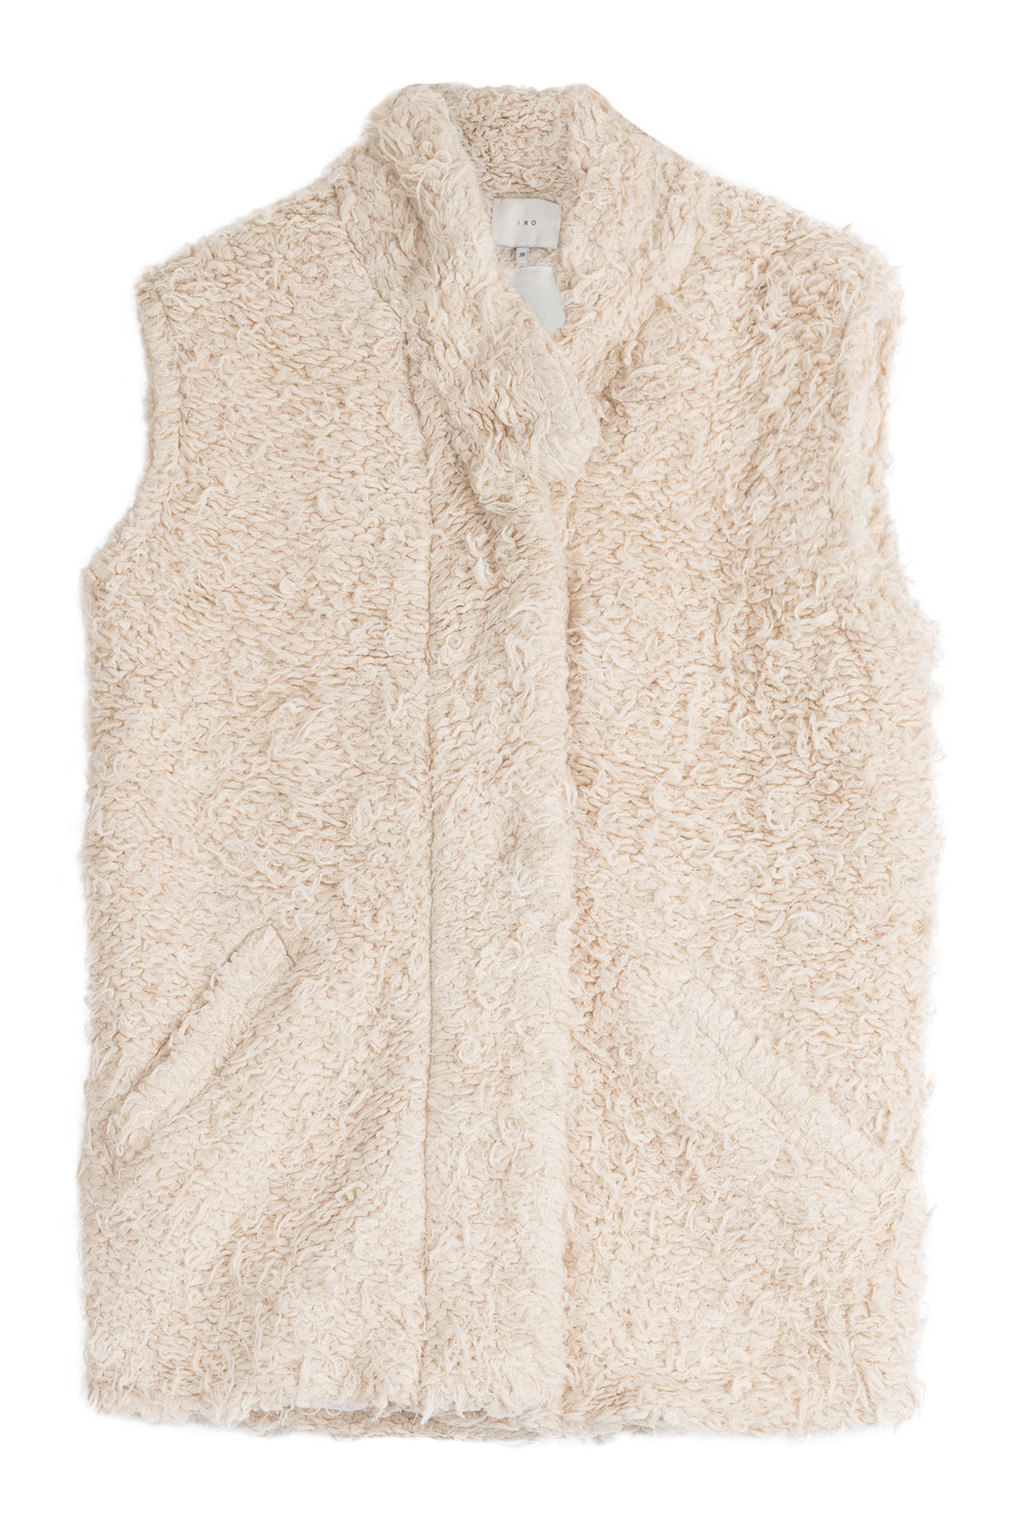 Faux Fur Vest - pattern: plain; sleeve style: sleeveless; style: gilet; collar: high neck; predominant colour: stone; occasions: casual, creative work; length: standard; fit: straight cut (boxy); fibres: acrylic - mix; sleeve length: sleeveless; texture group: fur; collar break: high; pattern type: fabric; season: a/w 2015; wardrobe: highlight